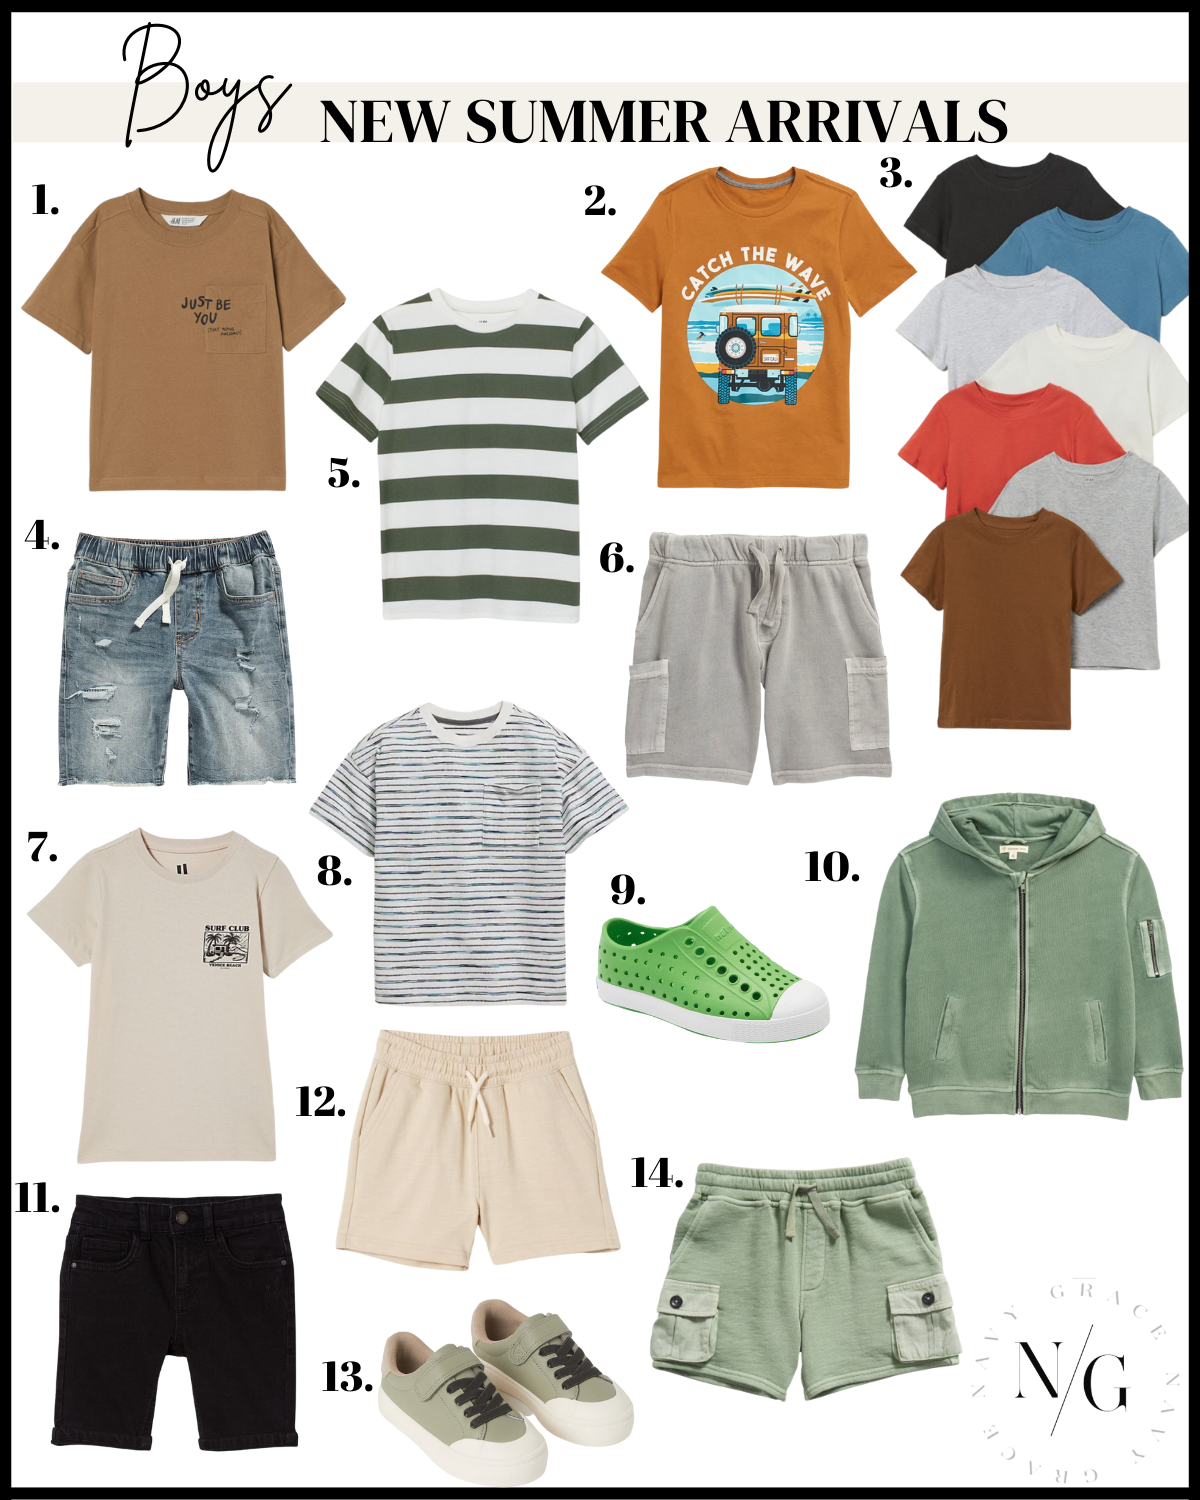 collage of kids new summer arrivals clothes